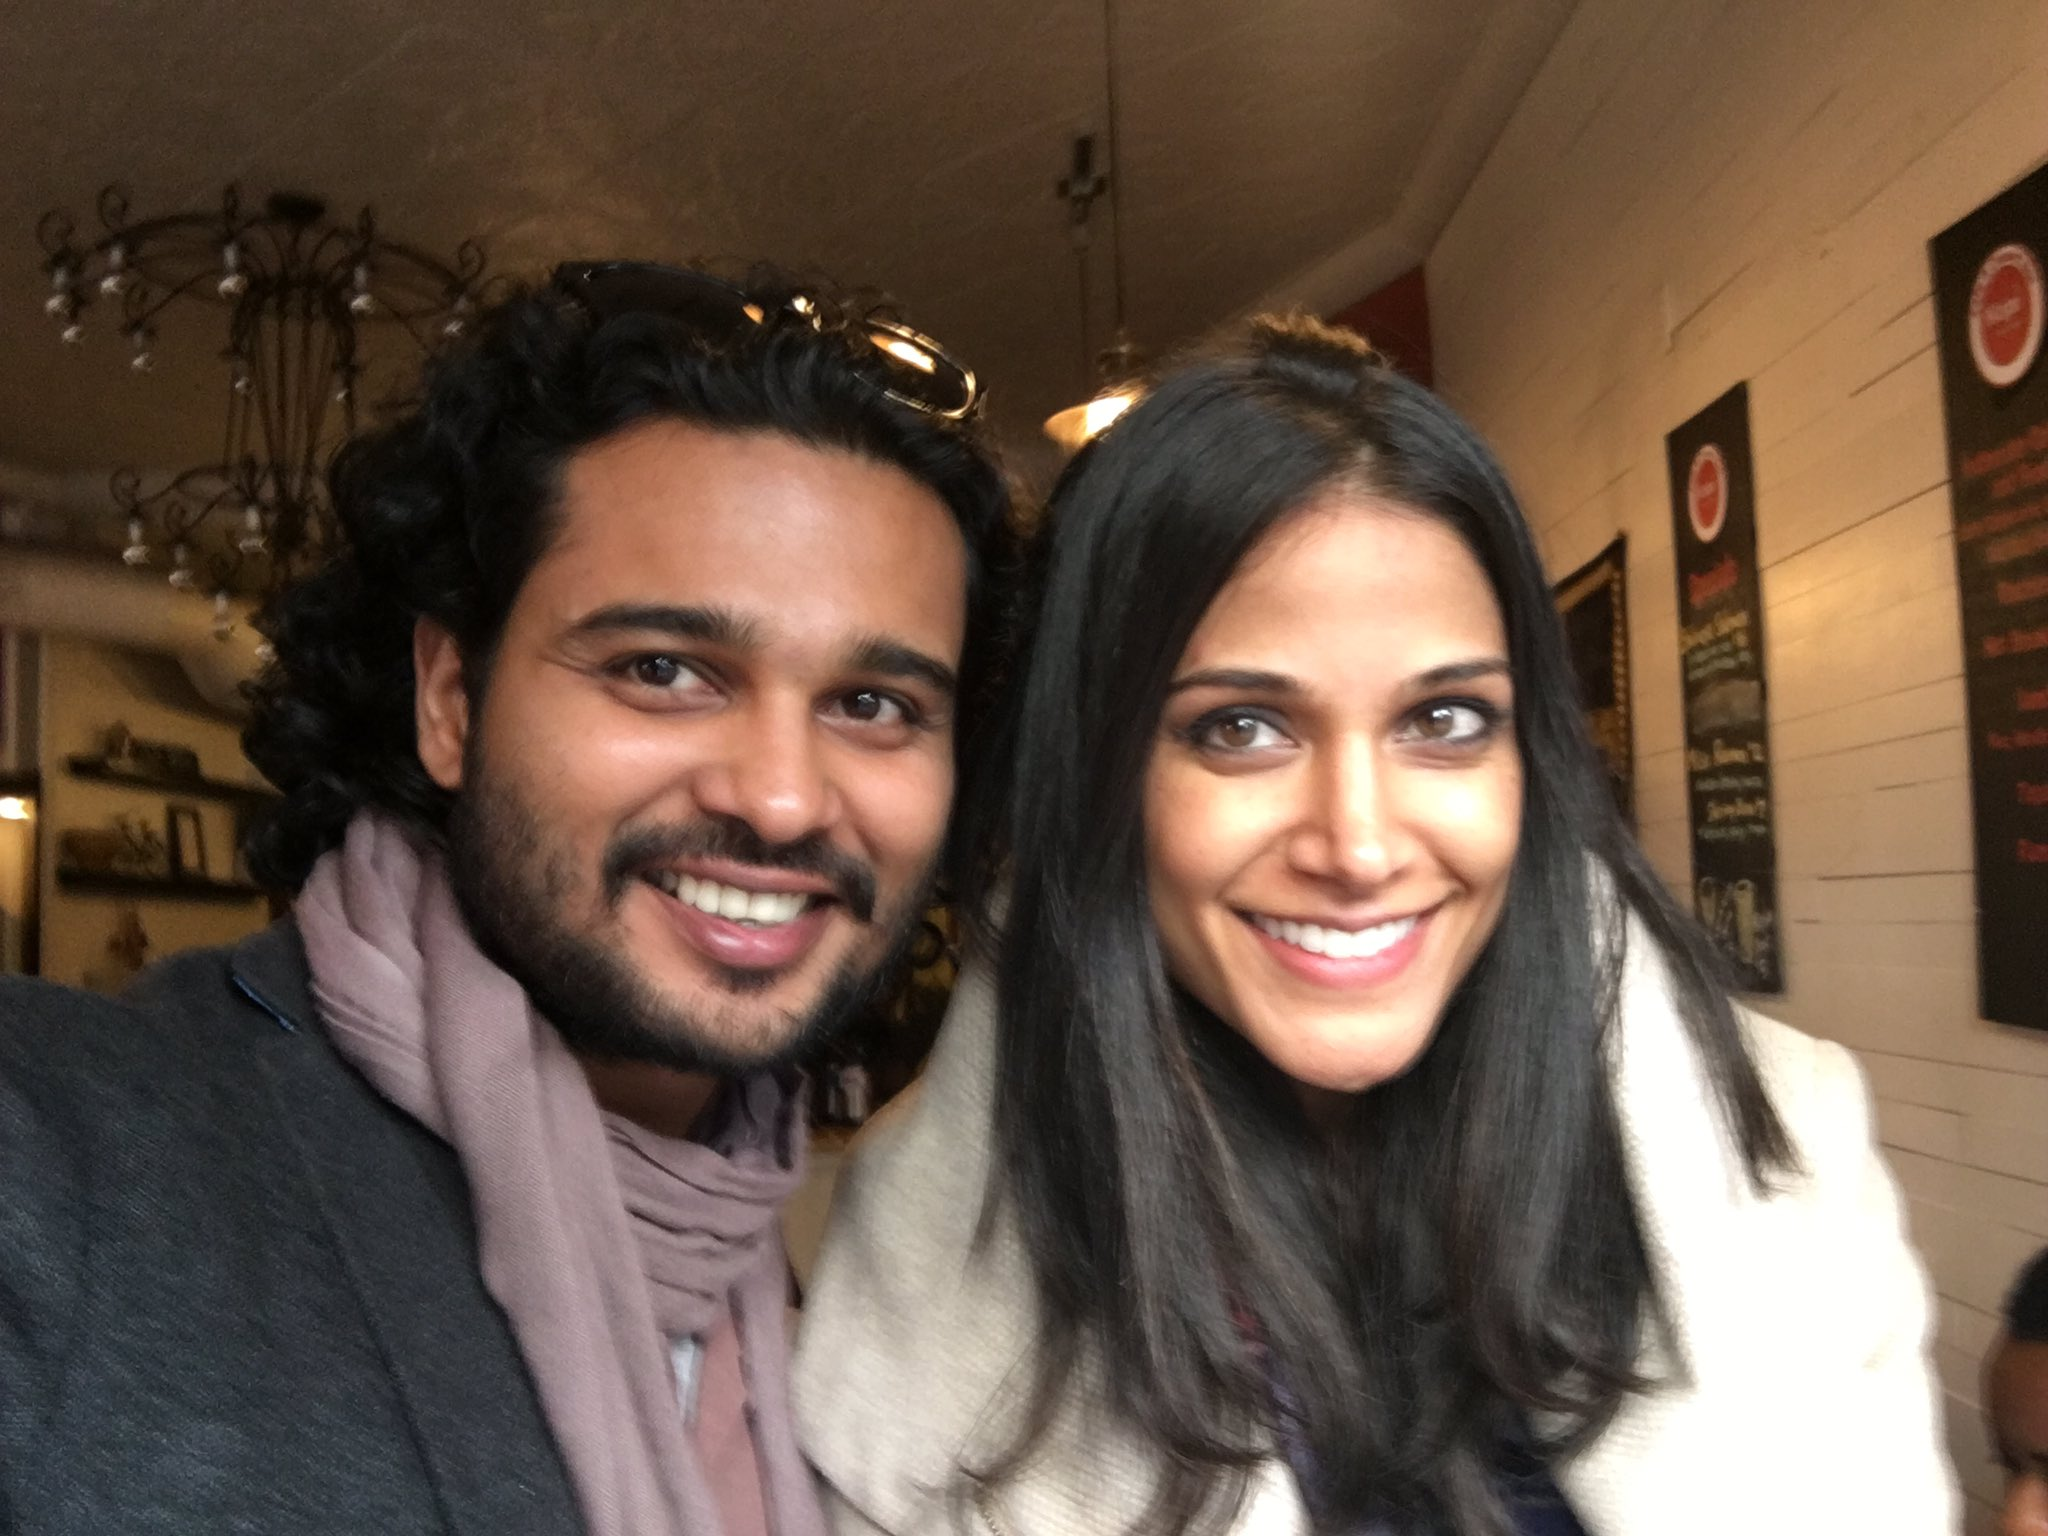 Writer-producer of For Here or to Go Rishi Bhilawadikar with film's lead actress Melanie Chandra.